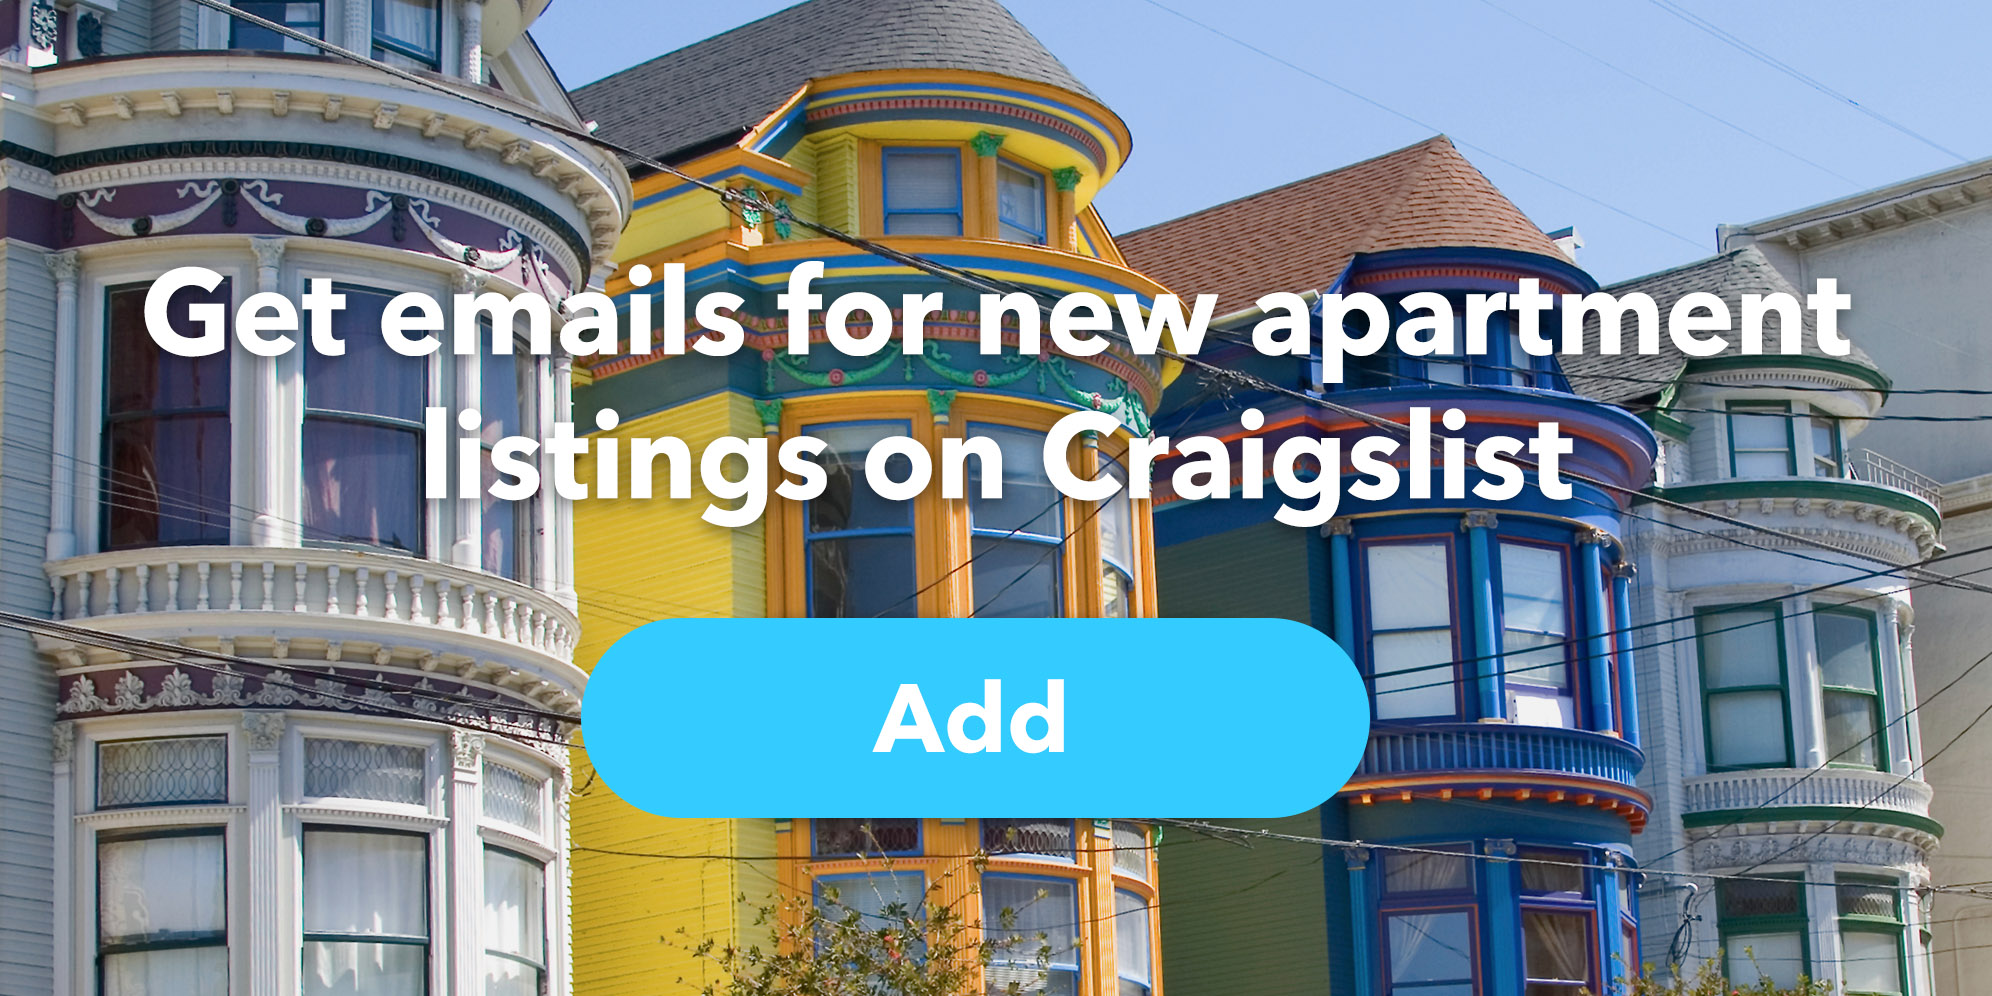 Get an email for new apartment listings on Craigslist